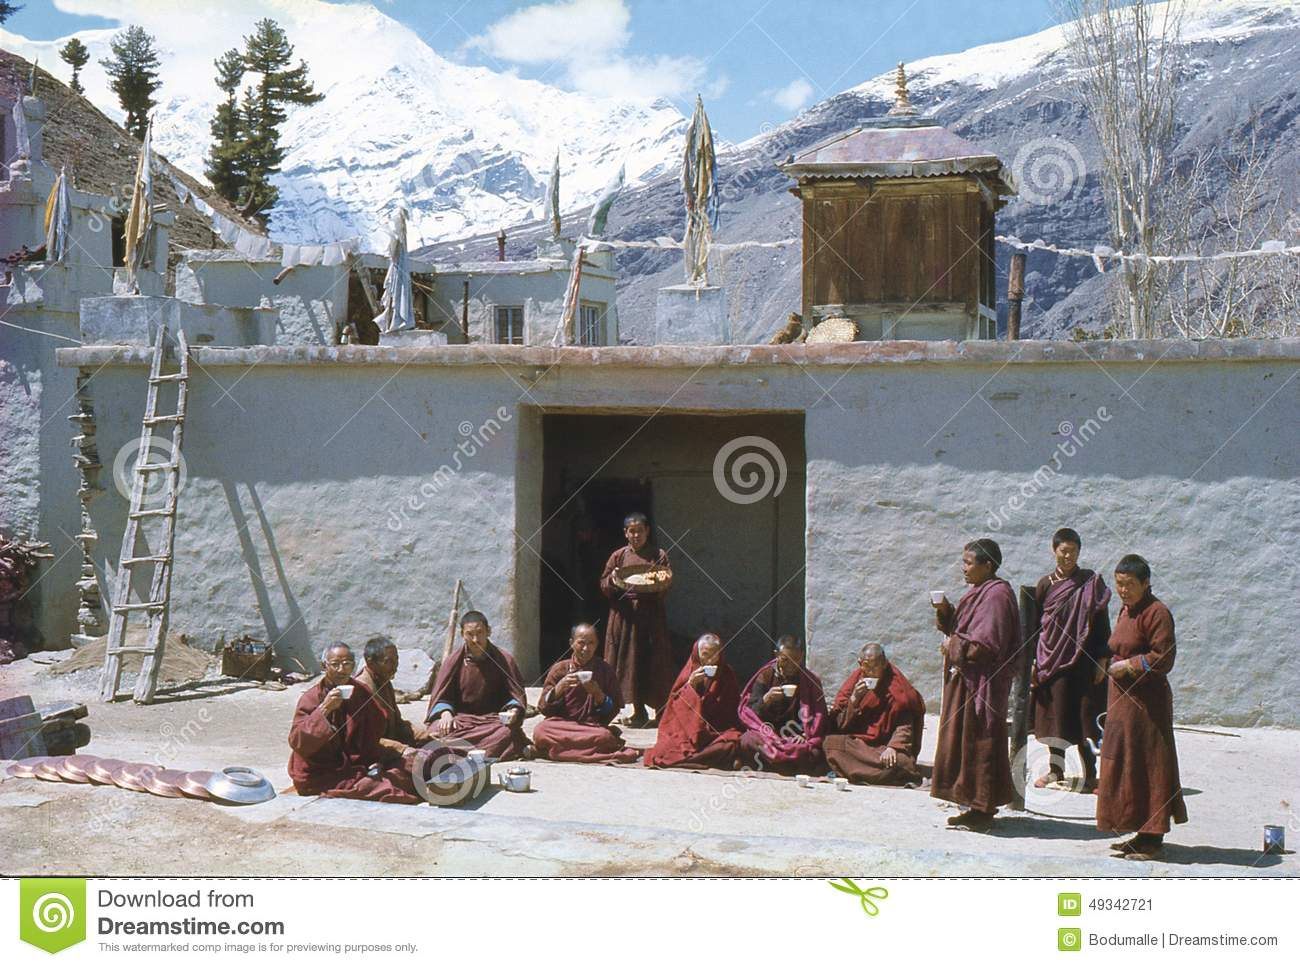 1977. India. Buddhist nuns and monks at Kardang-Gompa.